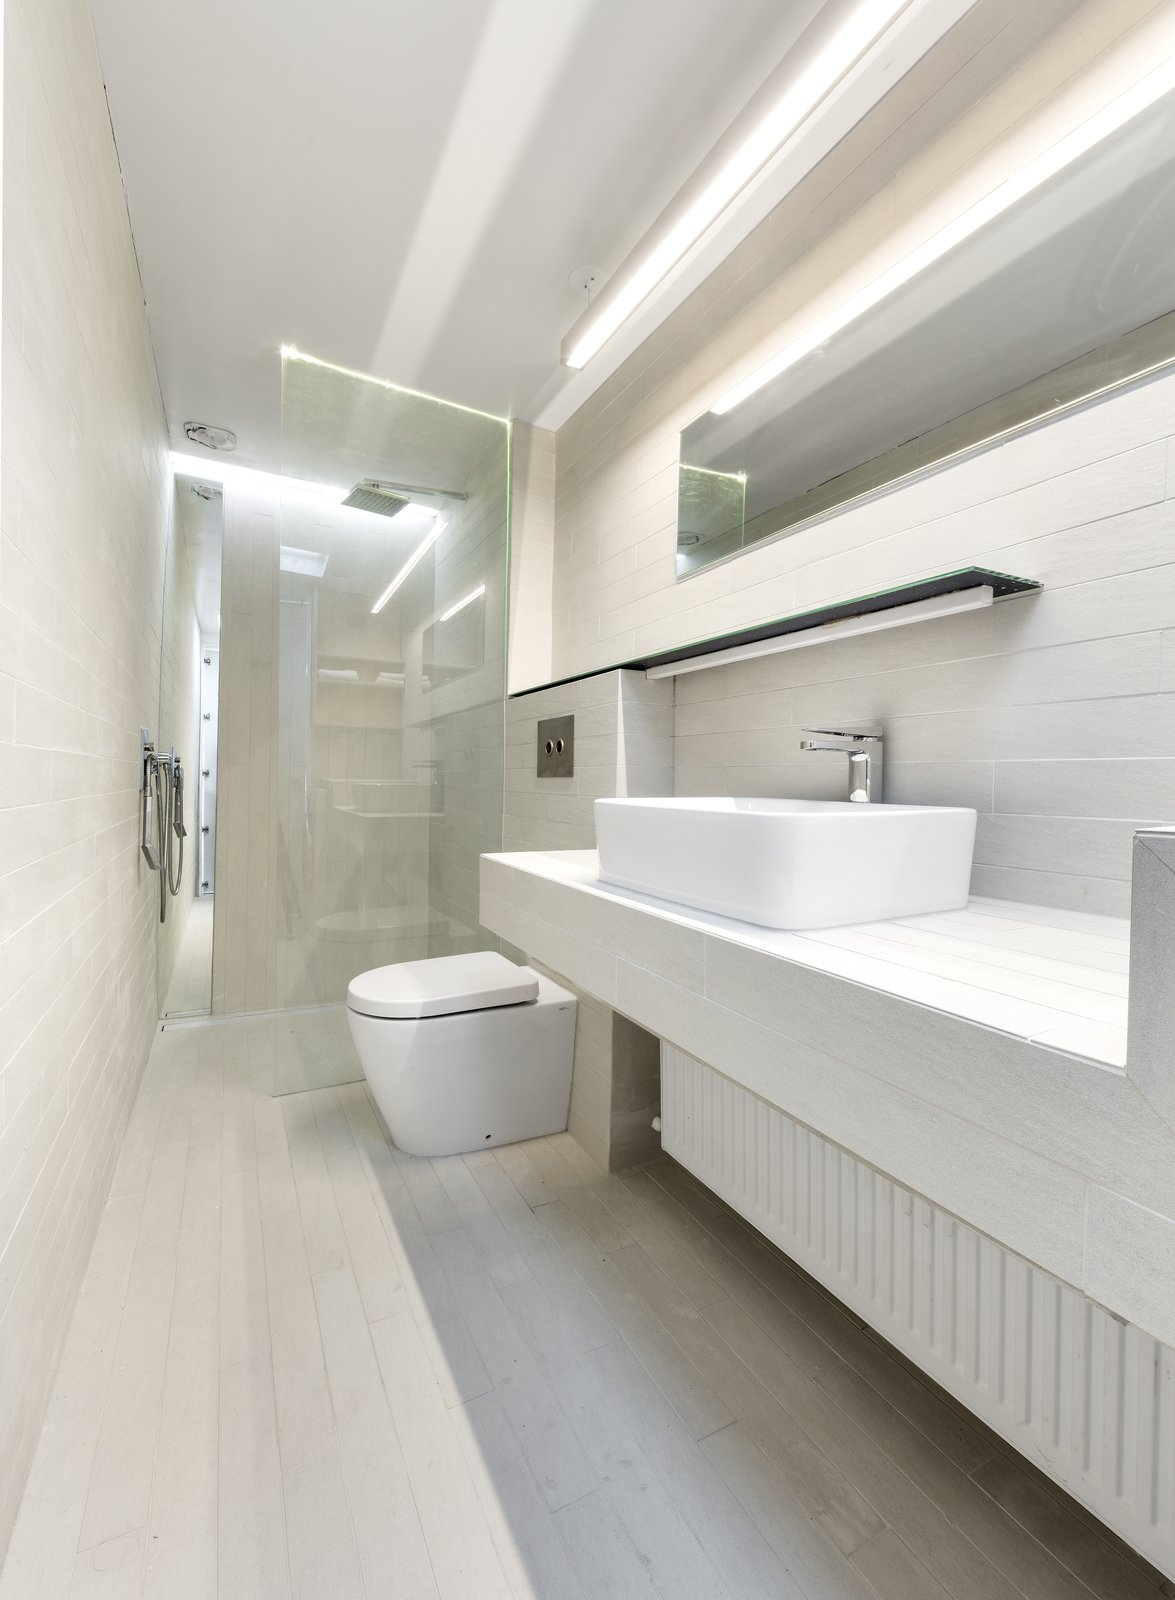 Bathroom Tagged: Bath Room, Tile Counter, Porcelain Tile Floor, Vessel Sink, Open Shower, Ceiling Lighting, Accent Lighting, Pendant Lighting, Porcelain Tile Wall, One Piece Toilet, and Recessed Lighting.  Curtain Cottage by Otto Henkell